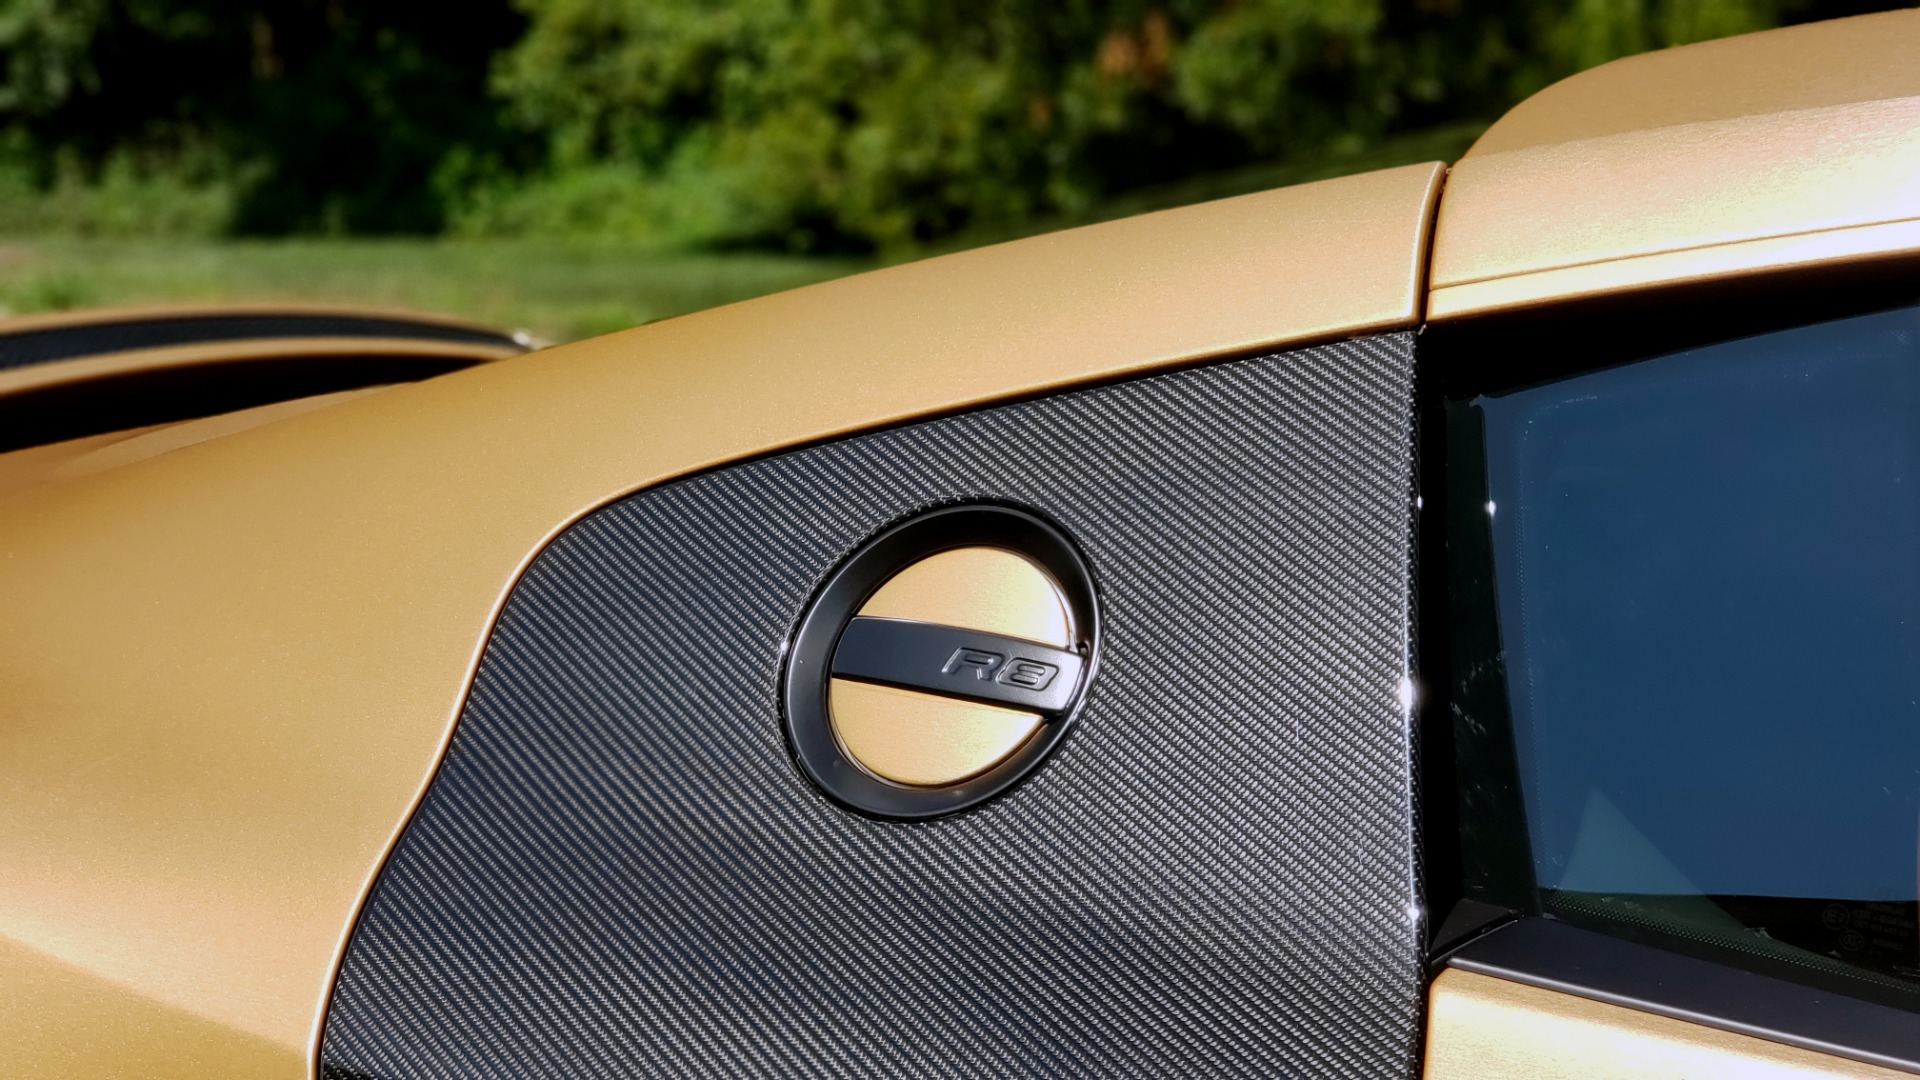 Used 2012 Audi R8 V10 5.2L / CUST WRAP BRUSHED BRONZE / NAV / B&O SOUND / CUST 19IN WHLS for sale $79,999 at Formula Imports in Charlotte NC 28227 11